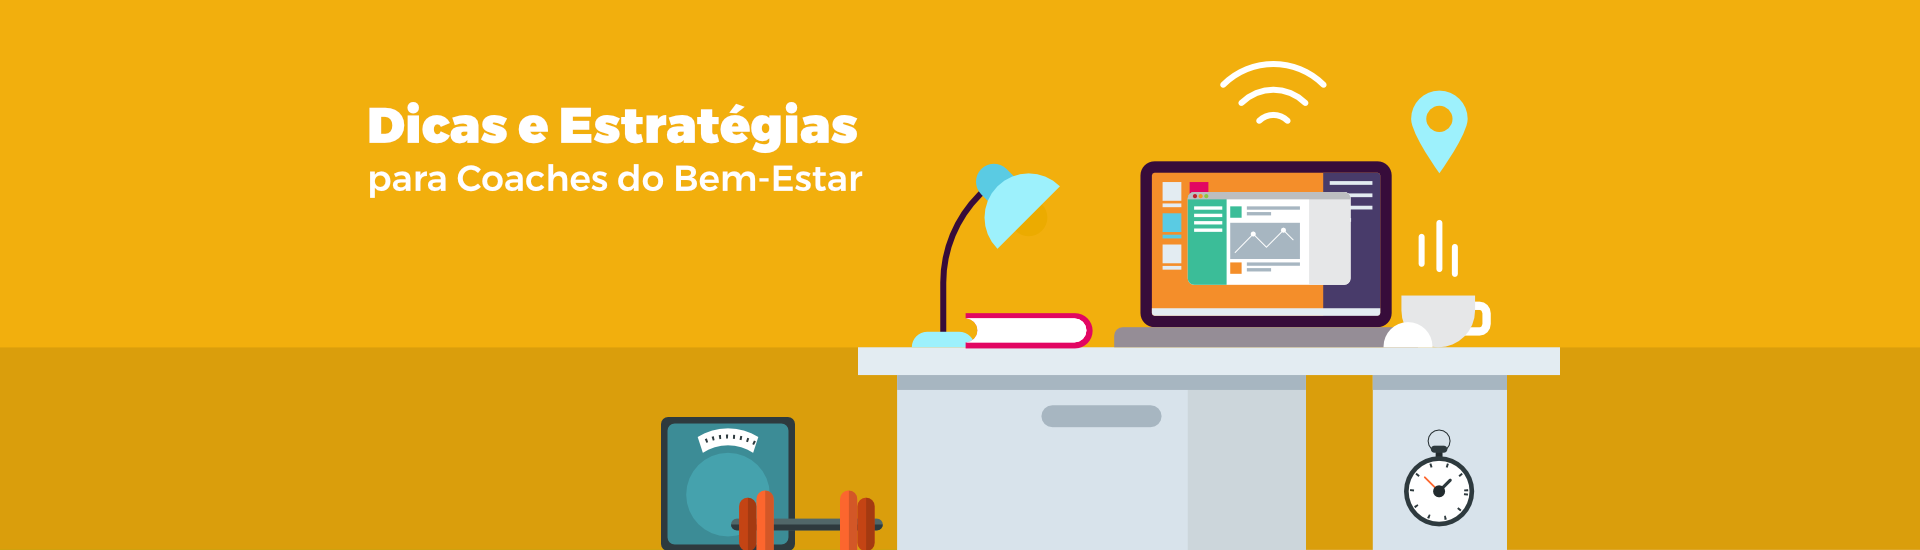 Categoria: Marketing Digital – Redes Sociais